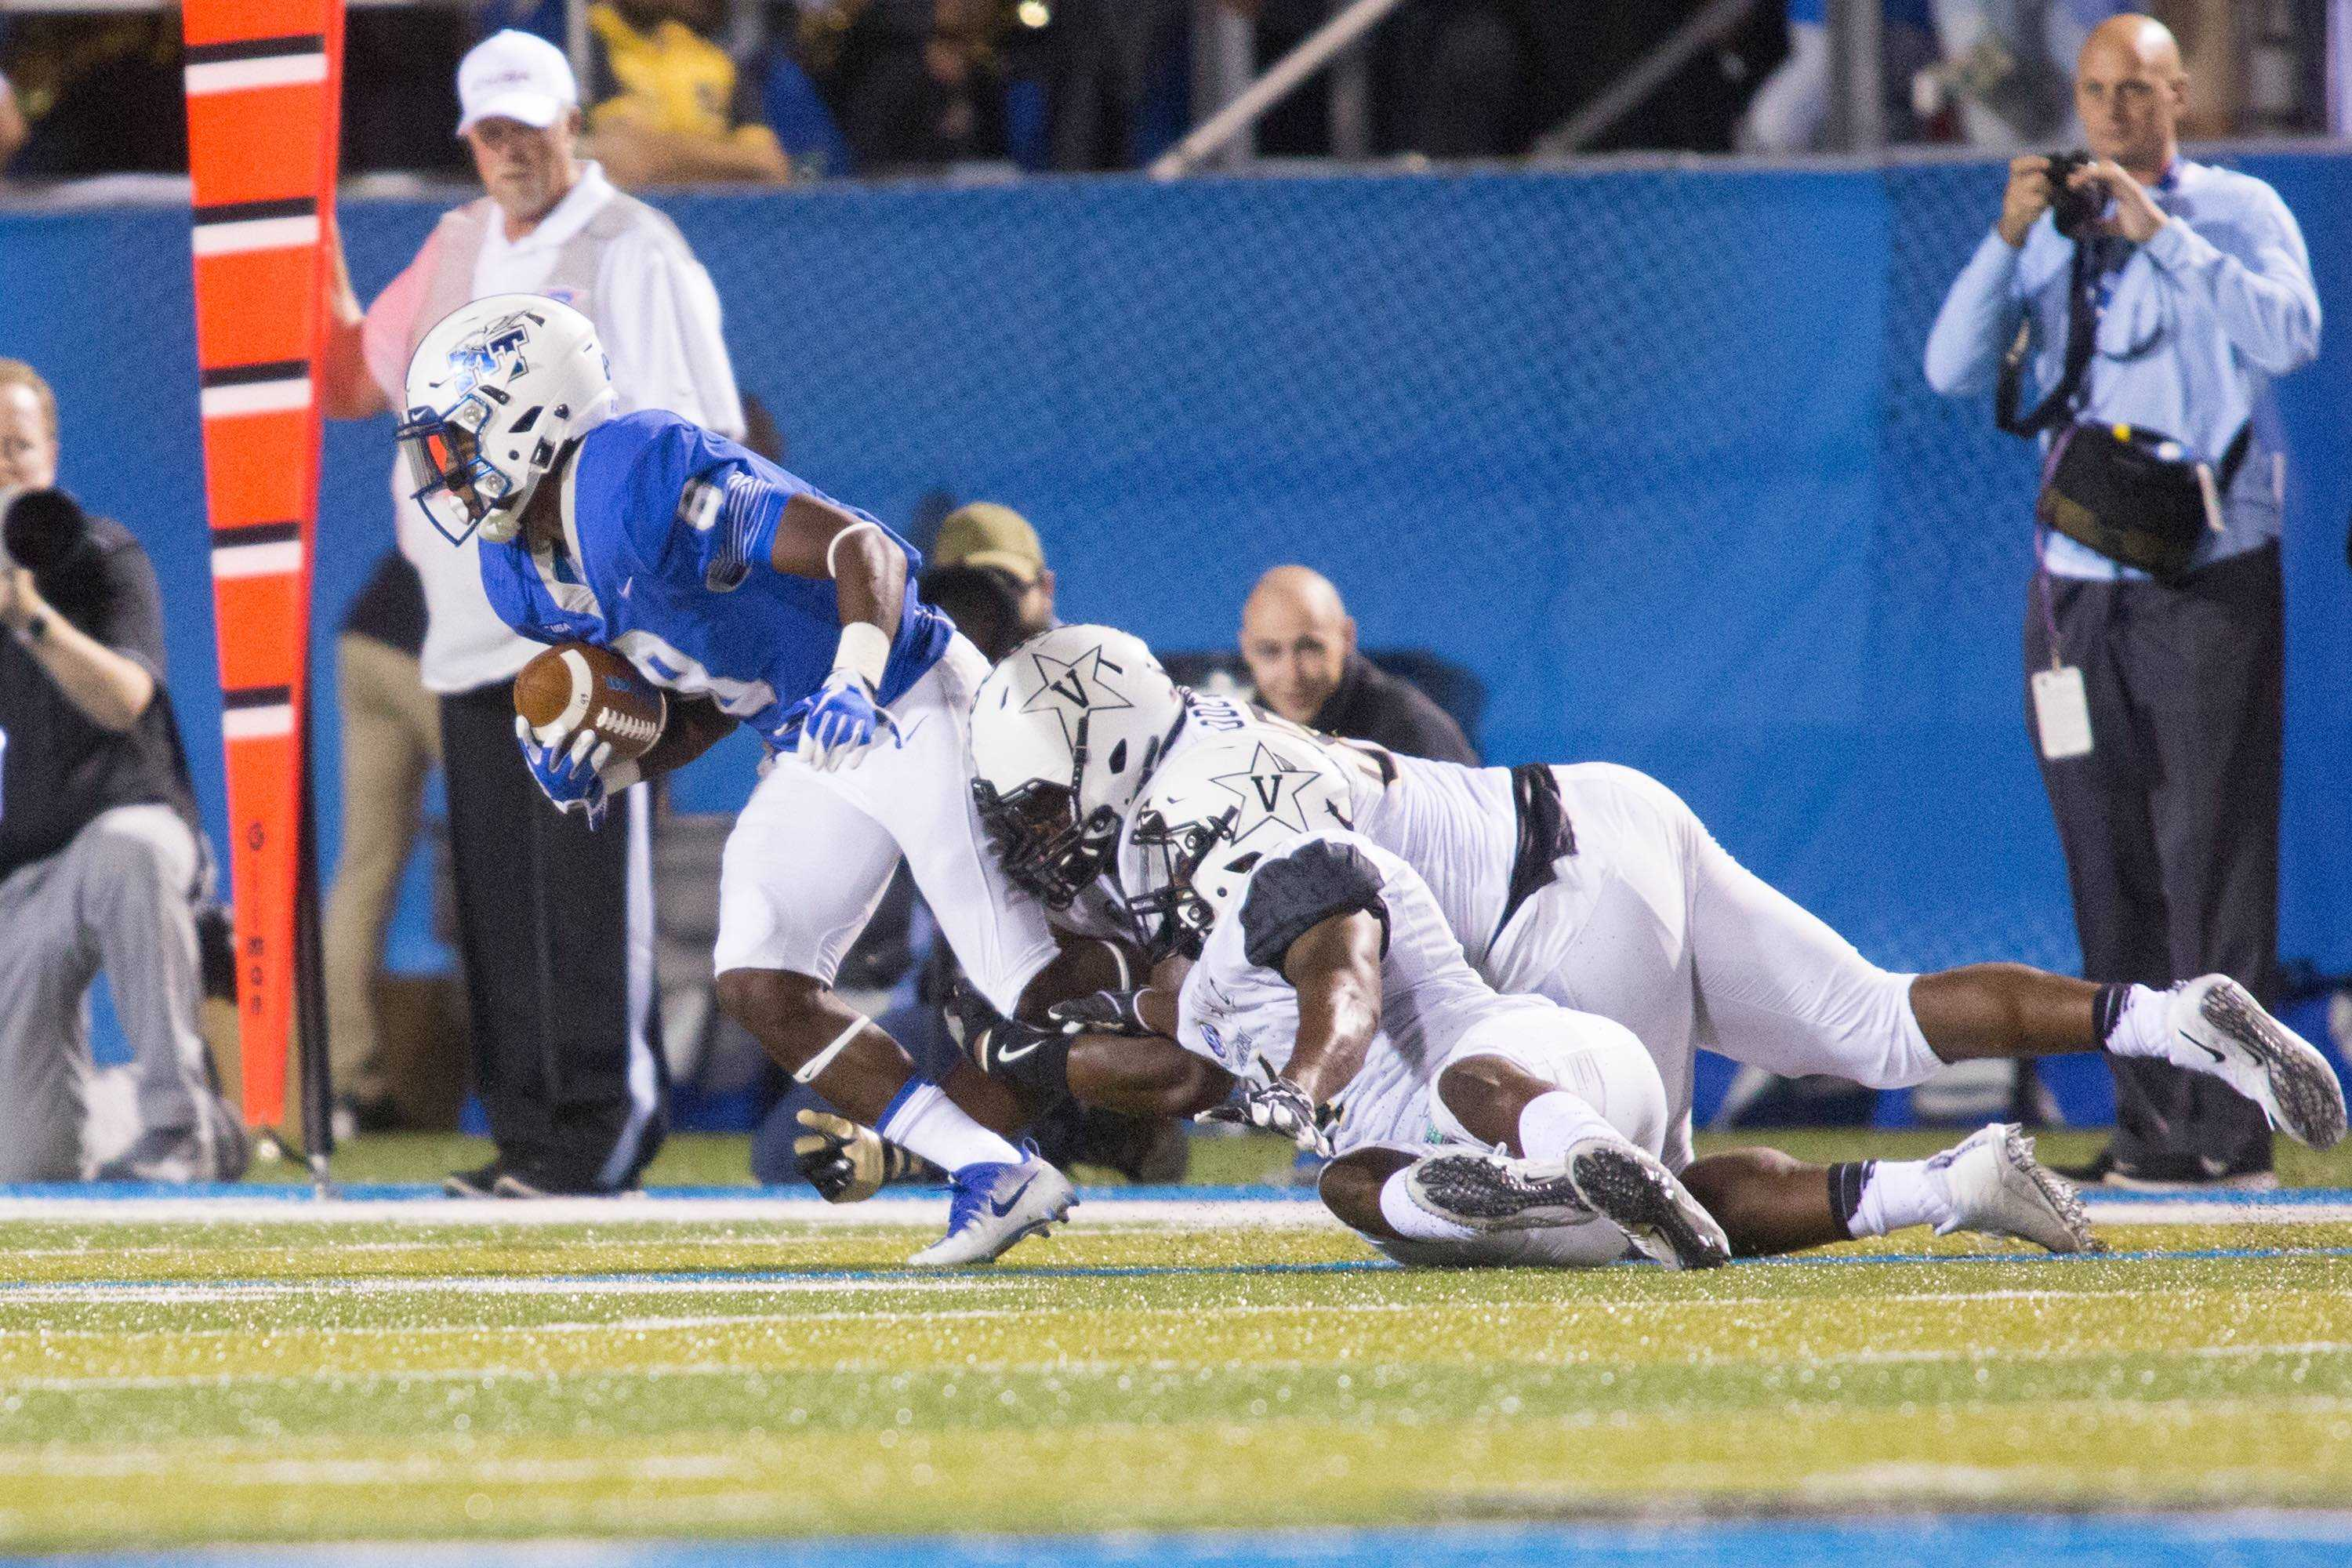 The Vanderbilt football team plays at Middle Tennessee State University on Saturday, September 2, 2017. Photo by Claire Barnett